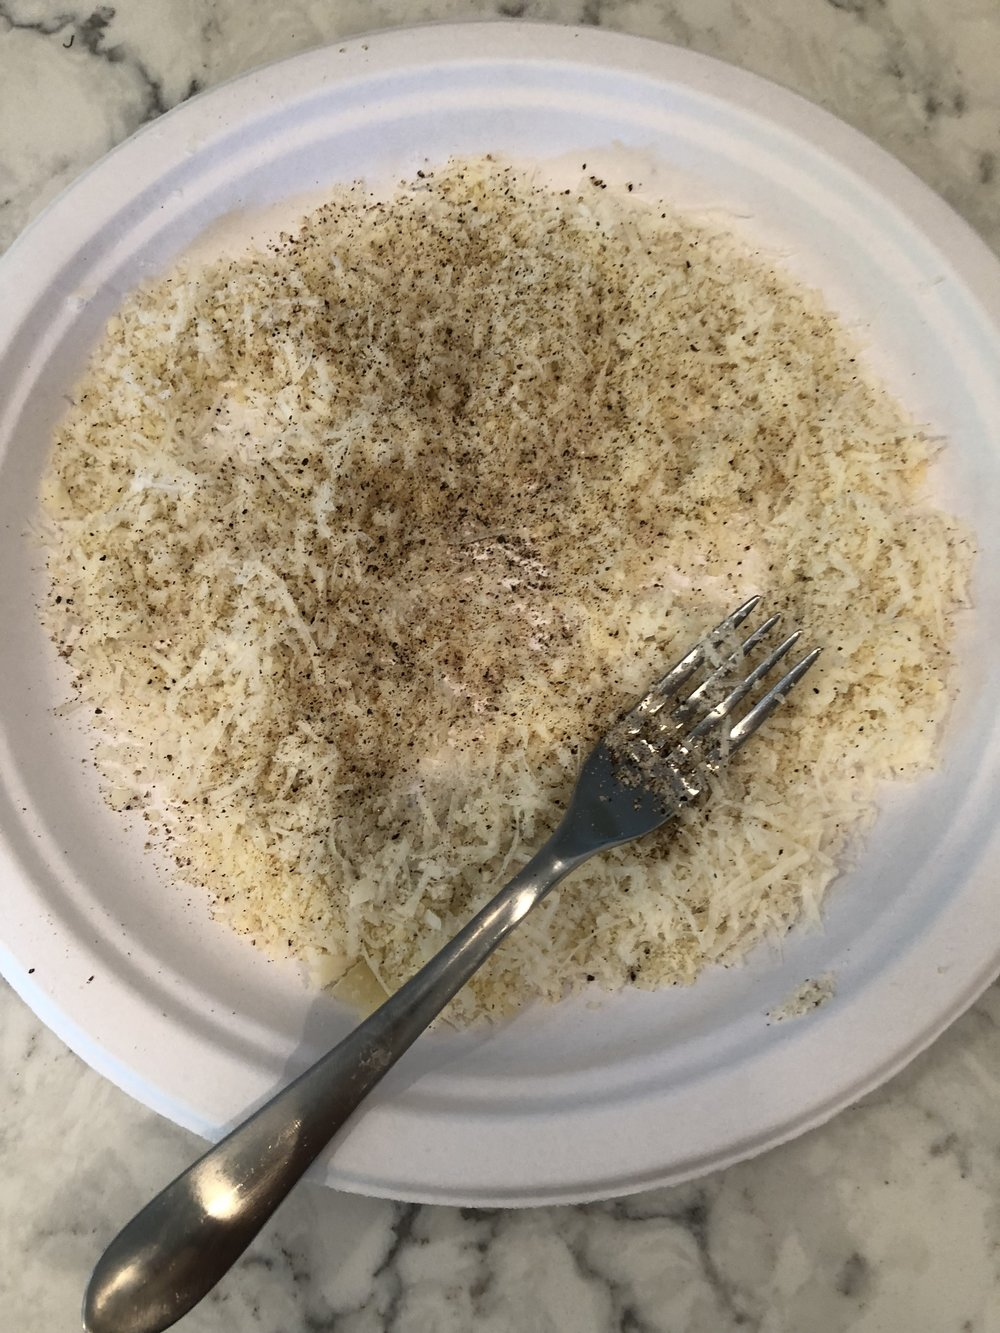 Parm, Cotija cheese, salt and pepper